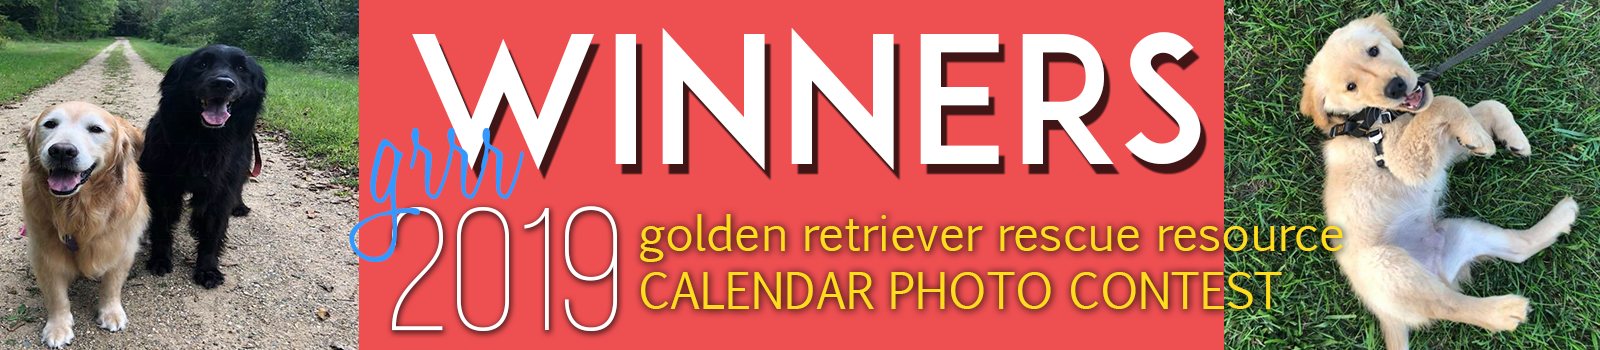 golden retriever calendar photo contest header graphic